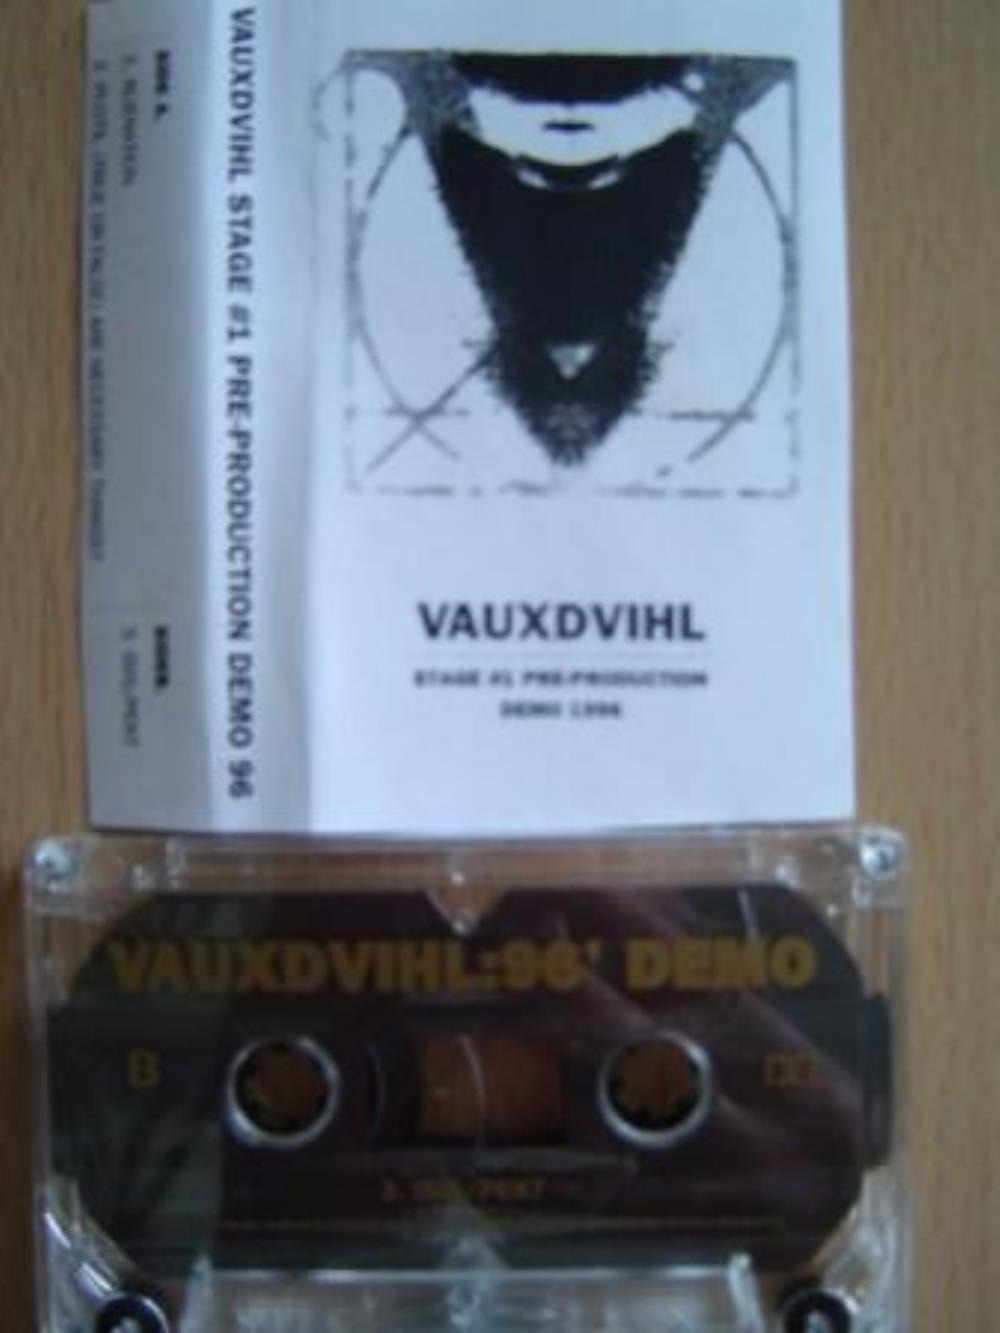 96 Demo by VAUXDVIHL album cover